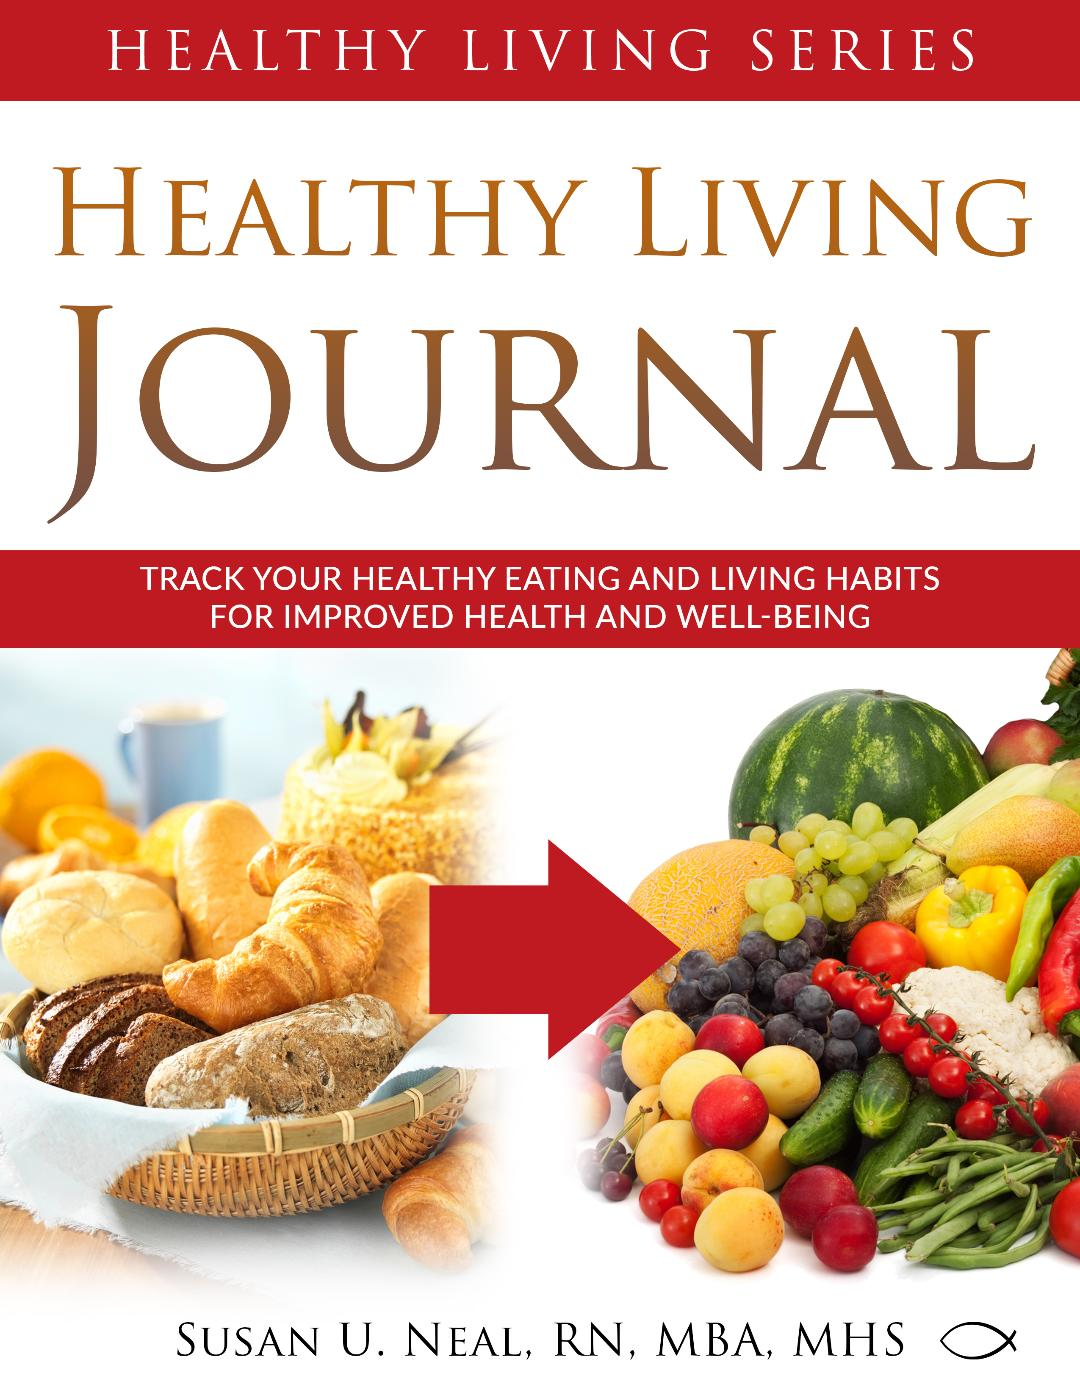 An Expert's Guide to Healthy Living: Interview with Susan Neal, RN, MBA, MHS